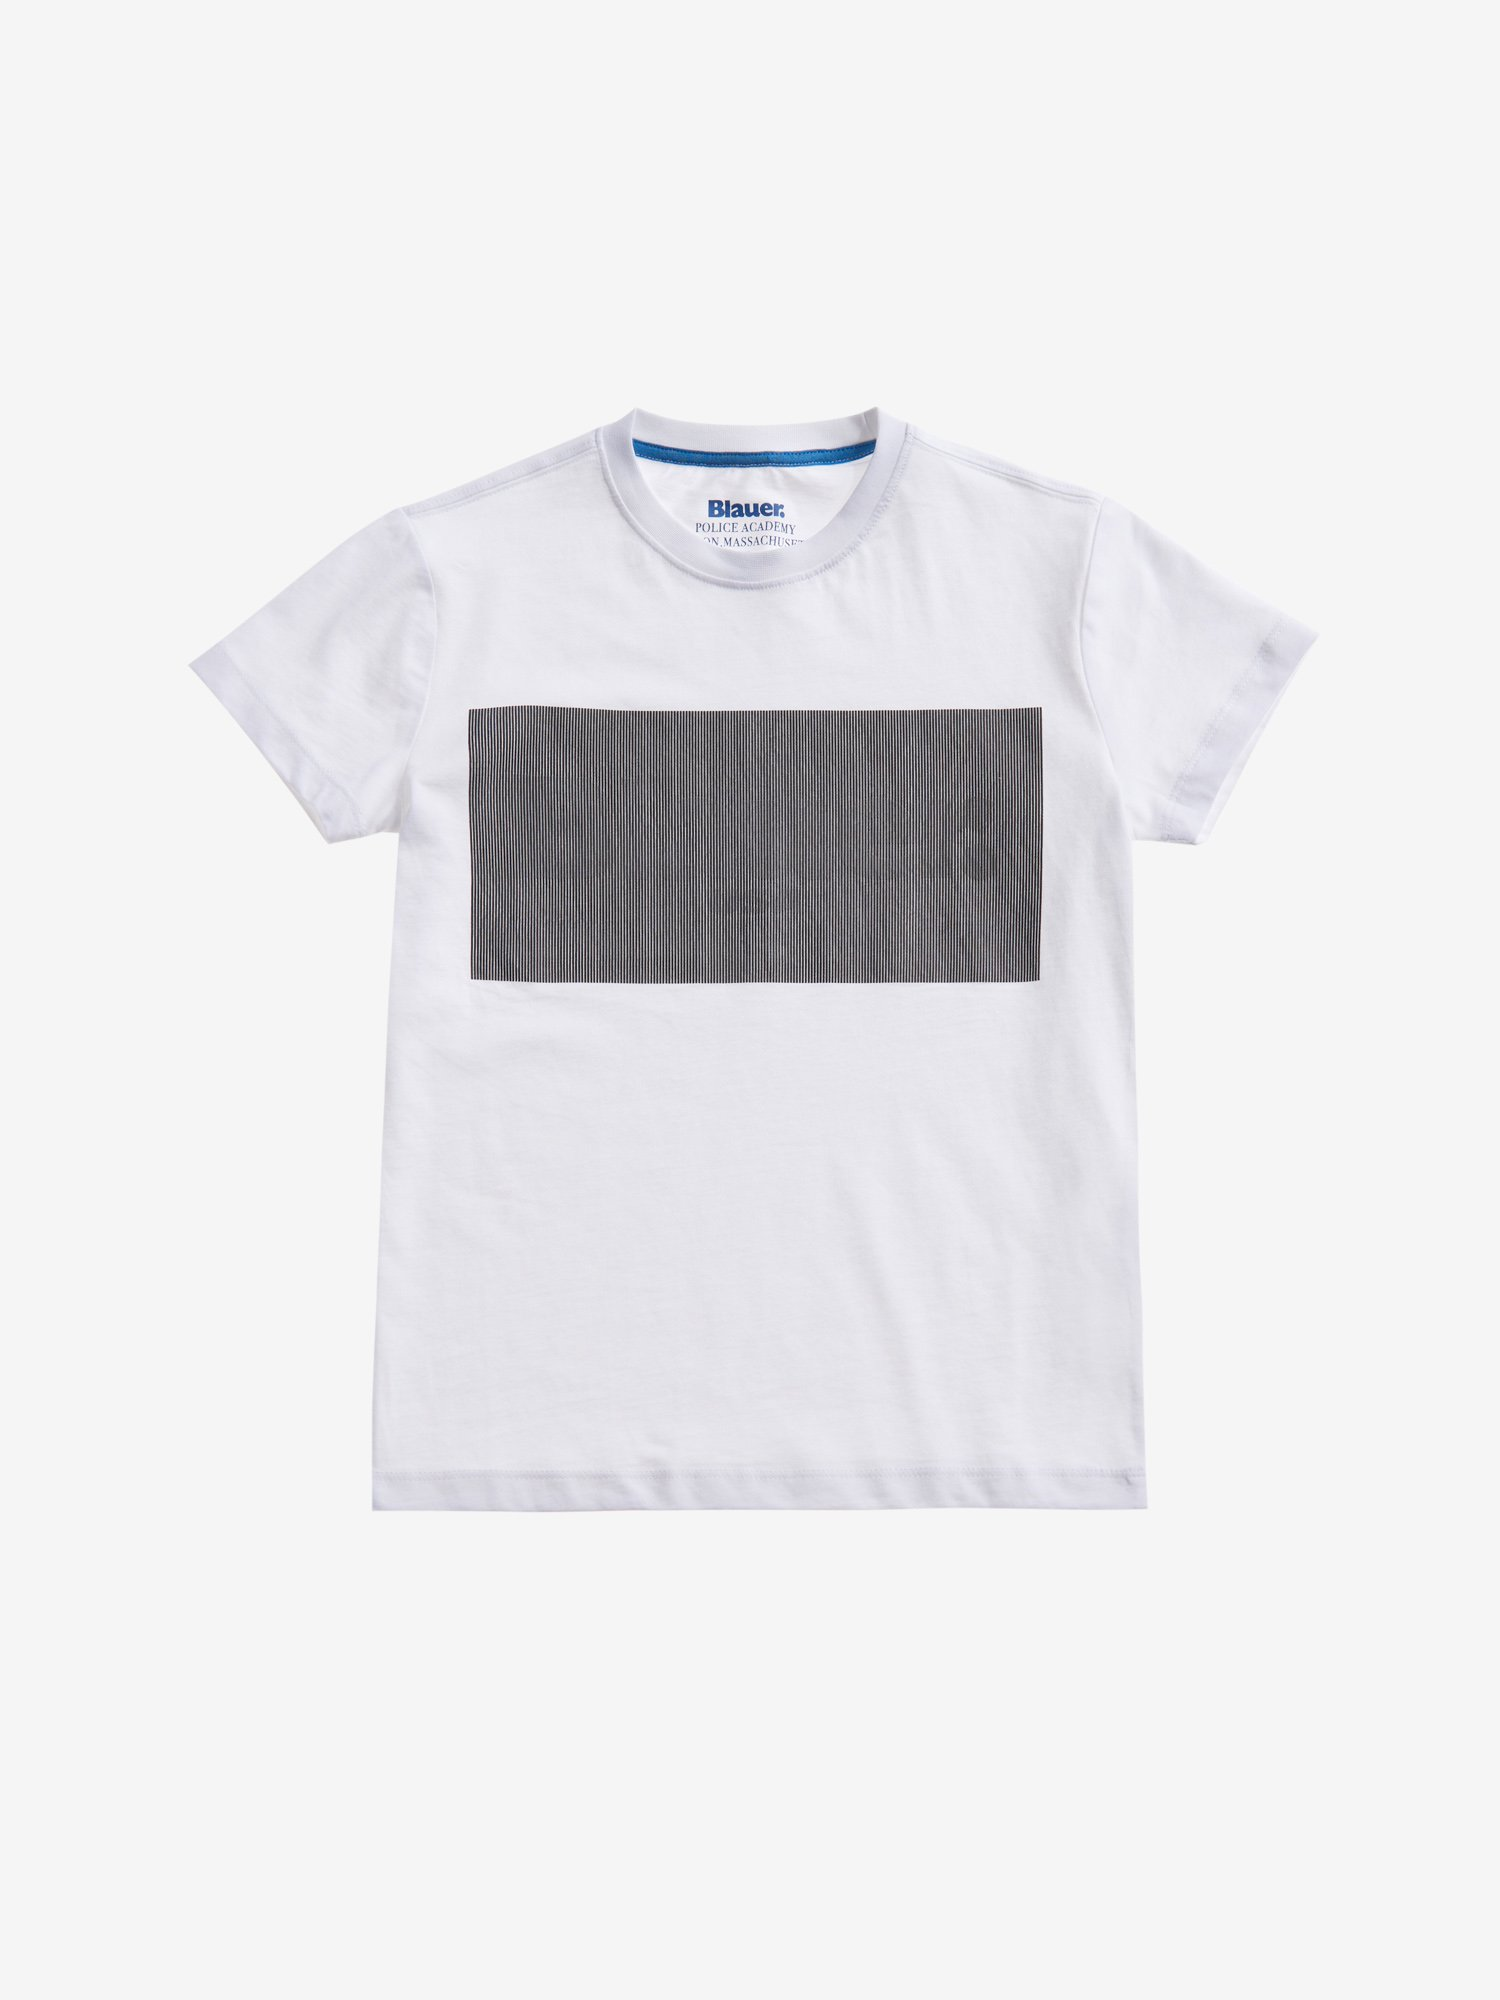 T-SHIRT WITH LENTICULAR PRINT - Blauer